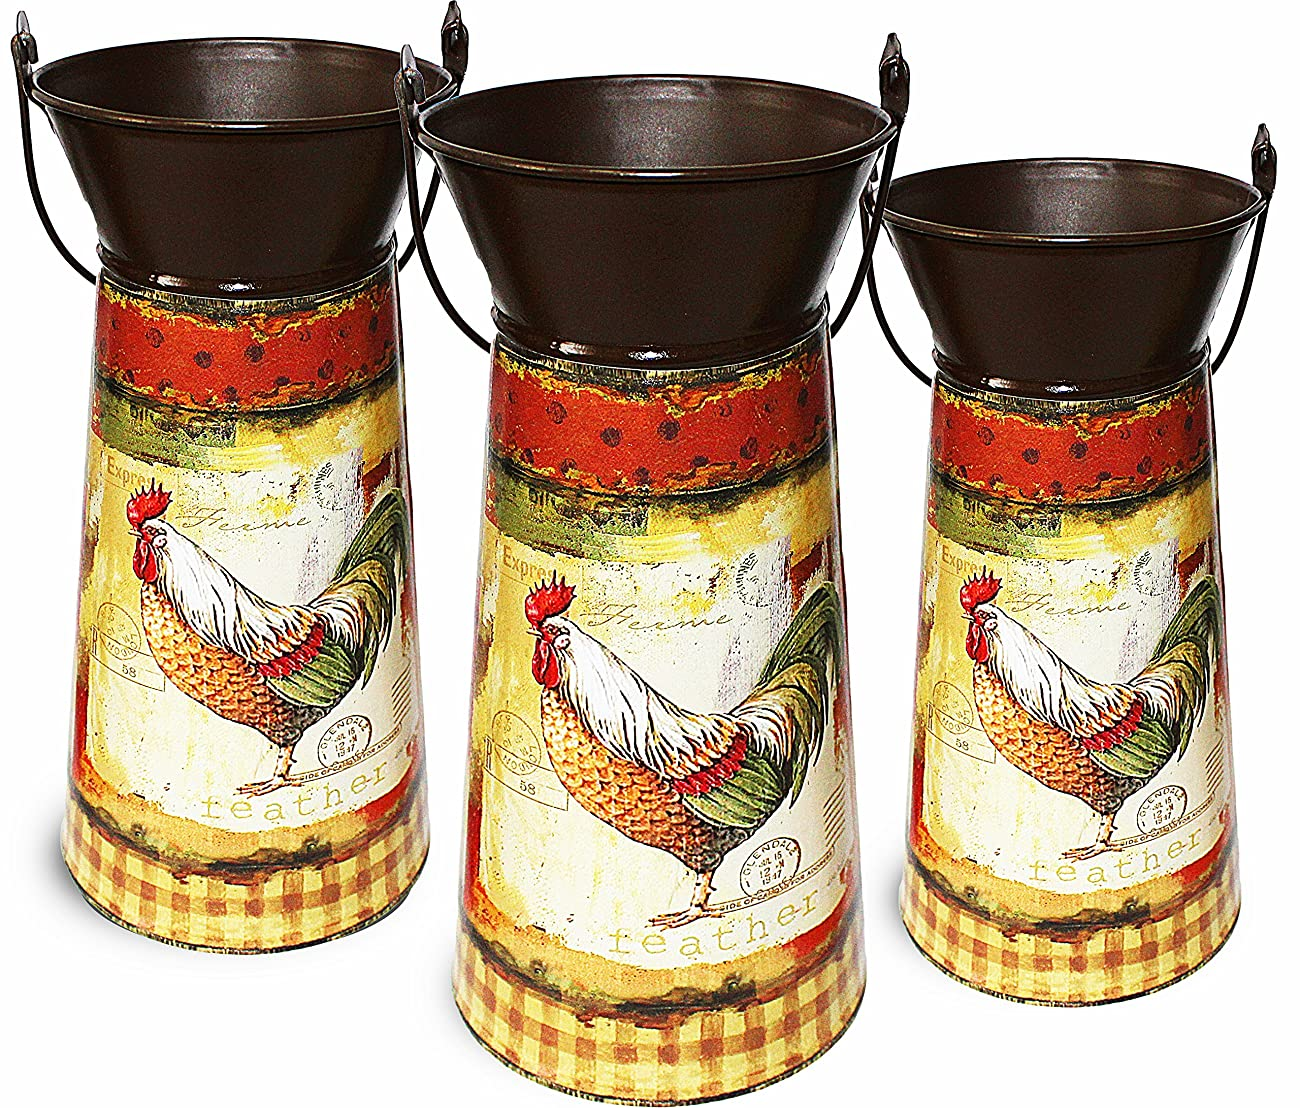 Janazala Metal Flower Pots Designed as Rustic Pitchers with Decorative Vintage Printing of Rooster on Each Flower Pot, Set of 3 5